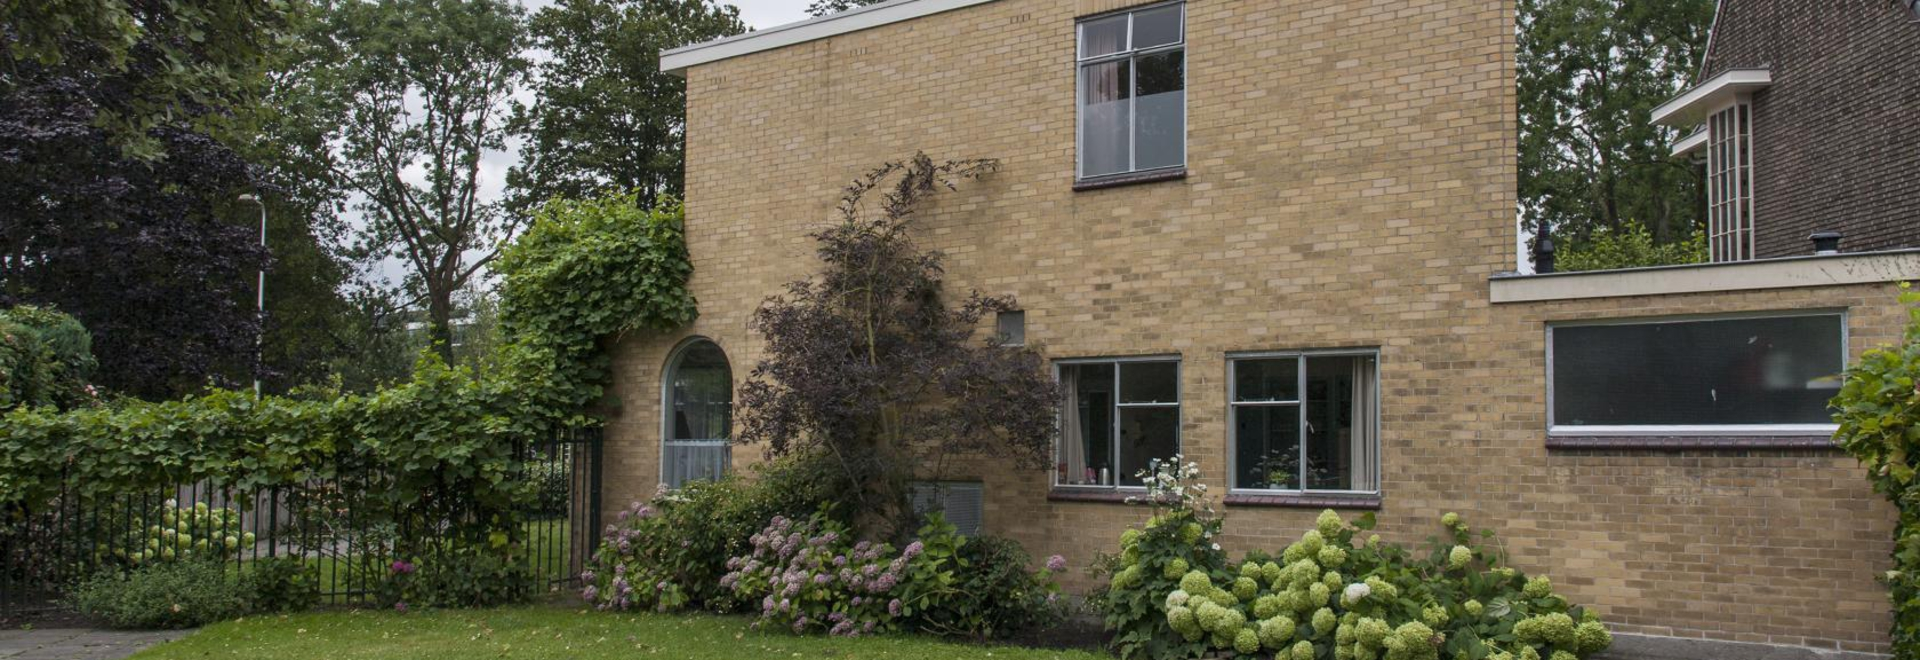 Utretch now has a new modernist house-museum in the shape of Sybold Ravesteyn's home, which recently opened to the public, just a stone's throw from the city's more famous Schröder House. Photograp...